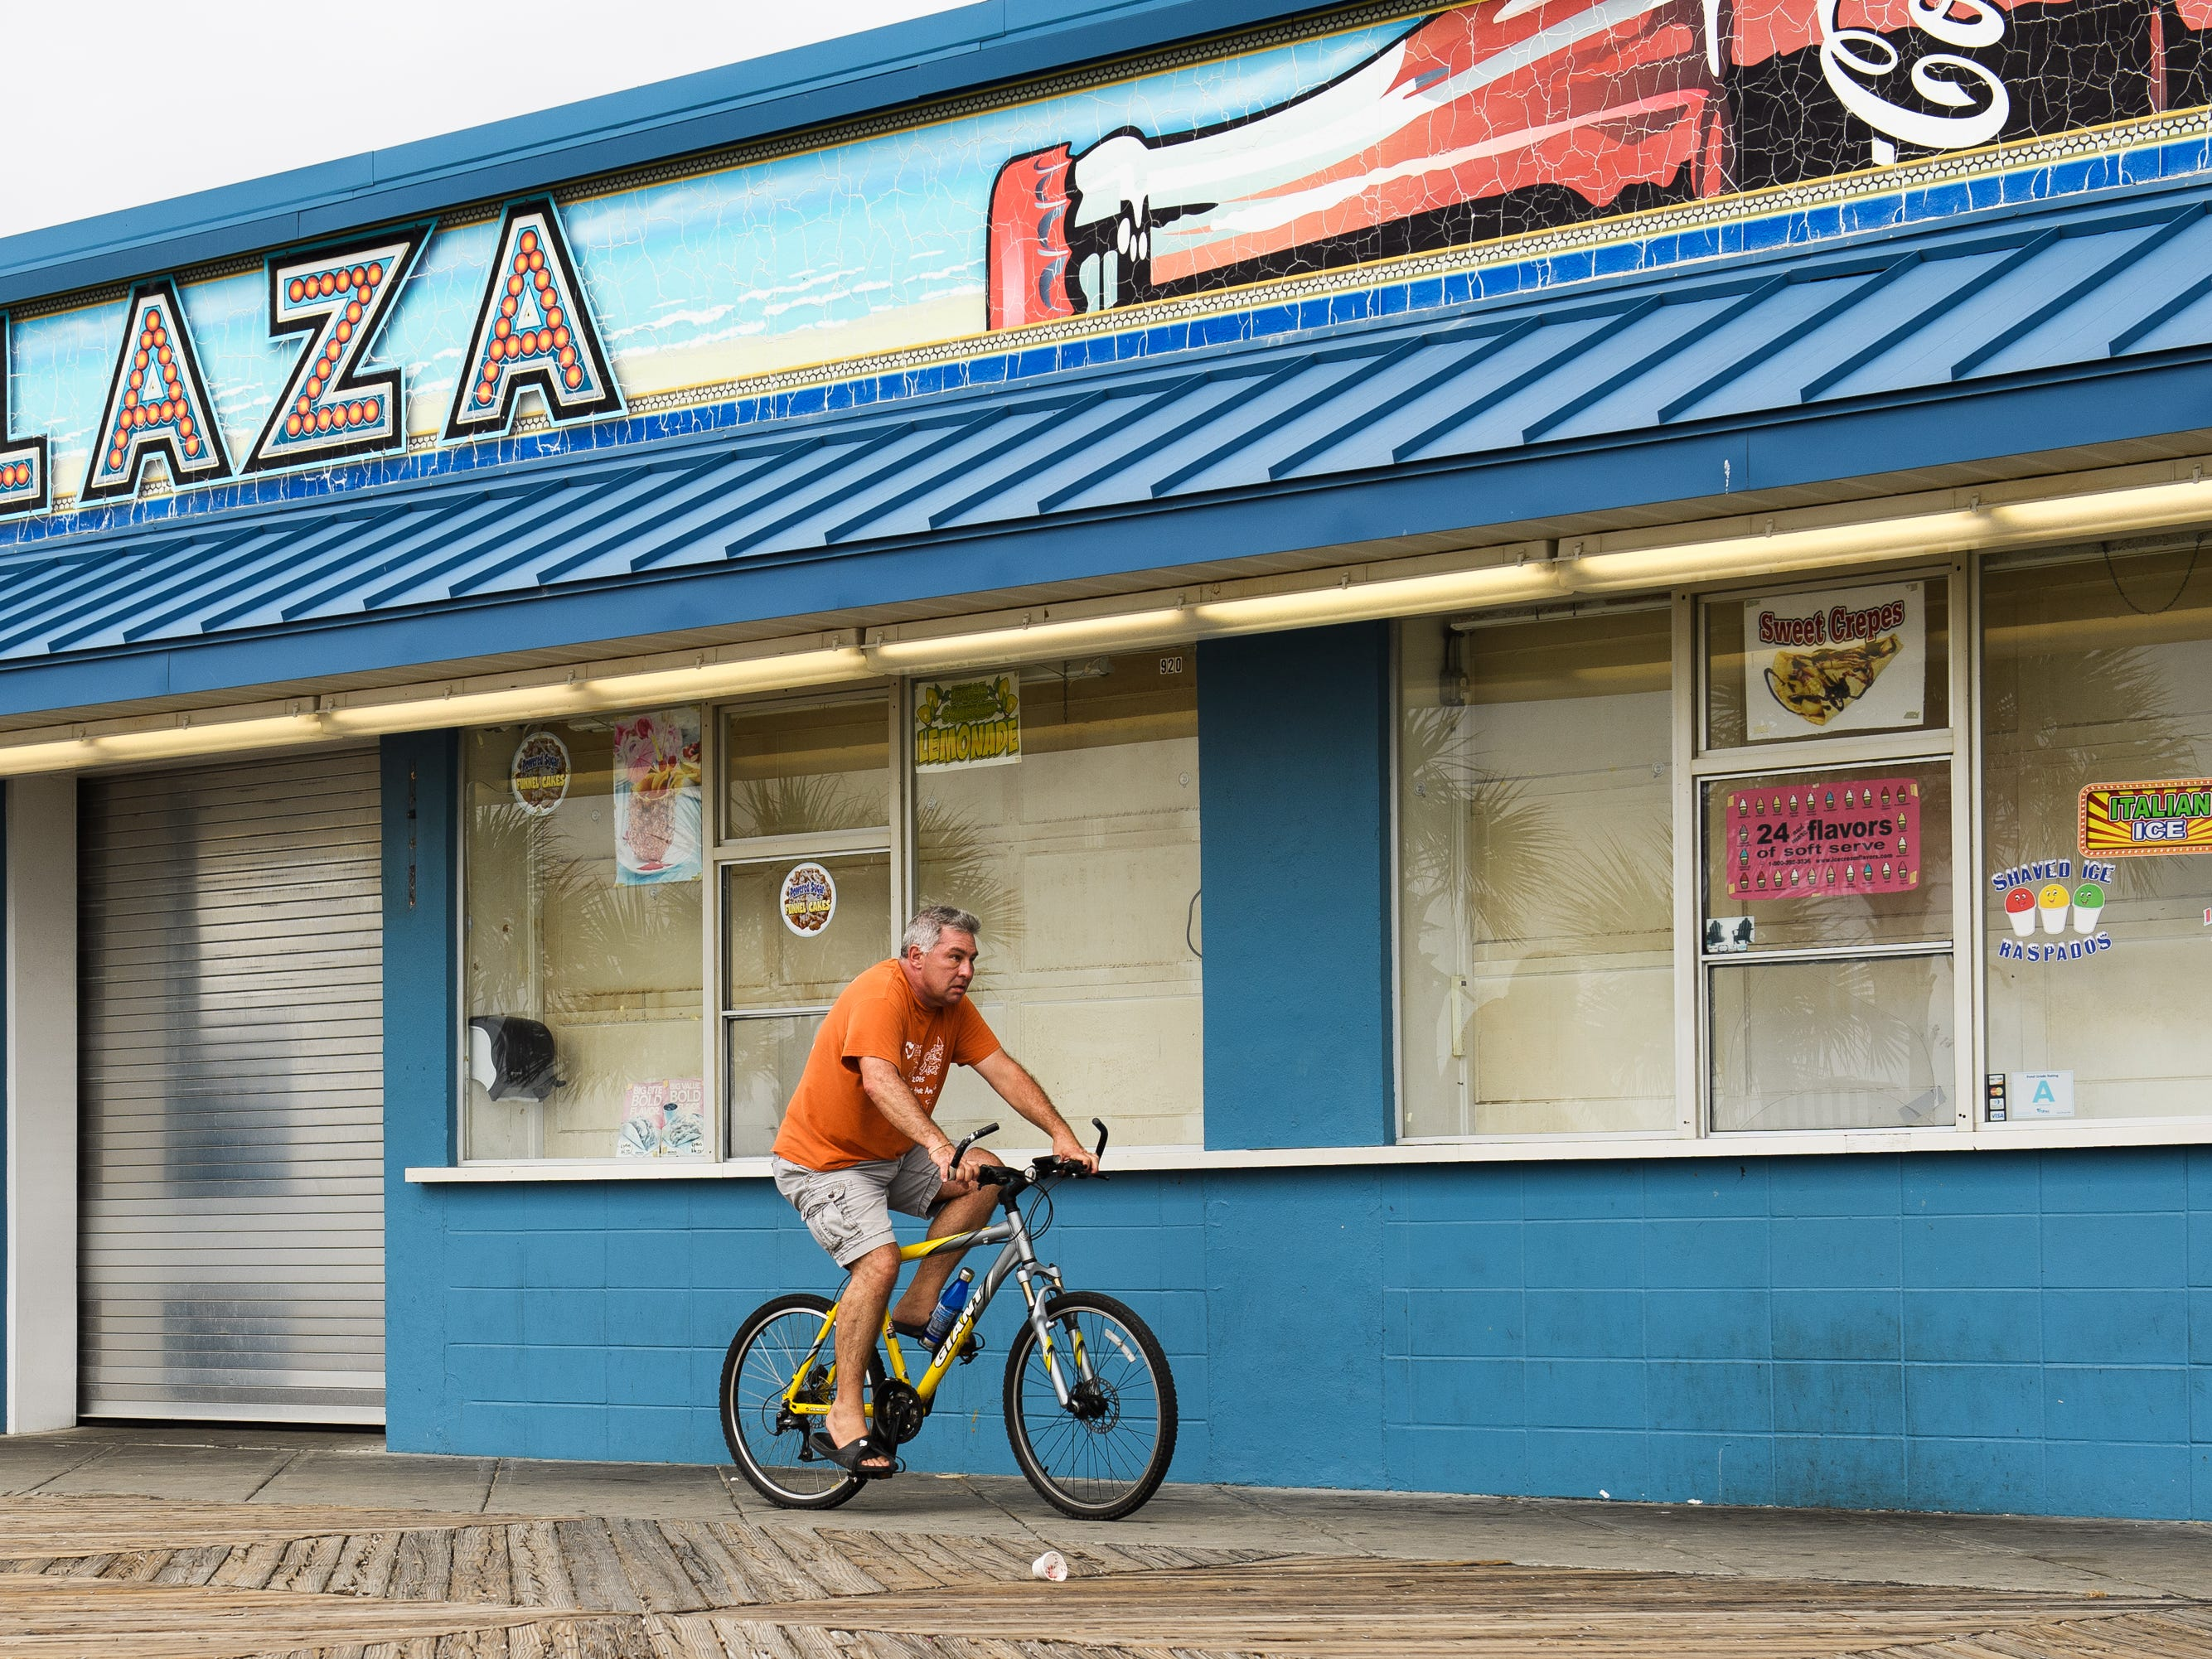 A man rides his bike at the Myrtle Beach Boardwalk and Promenade on Thursday, Sept. 13, 2018.